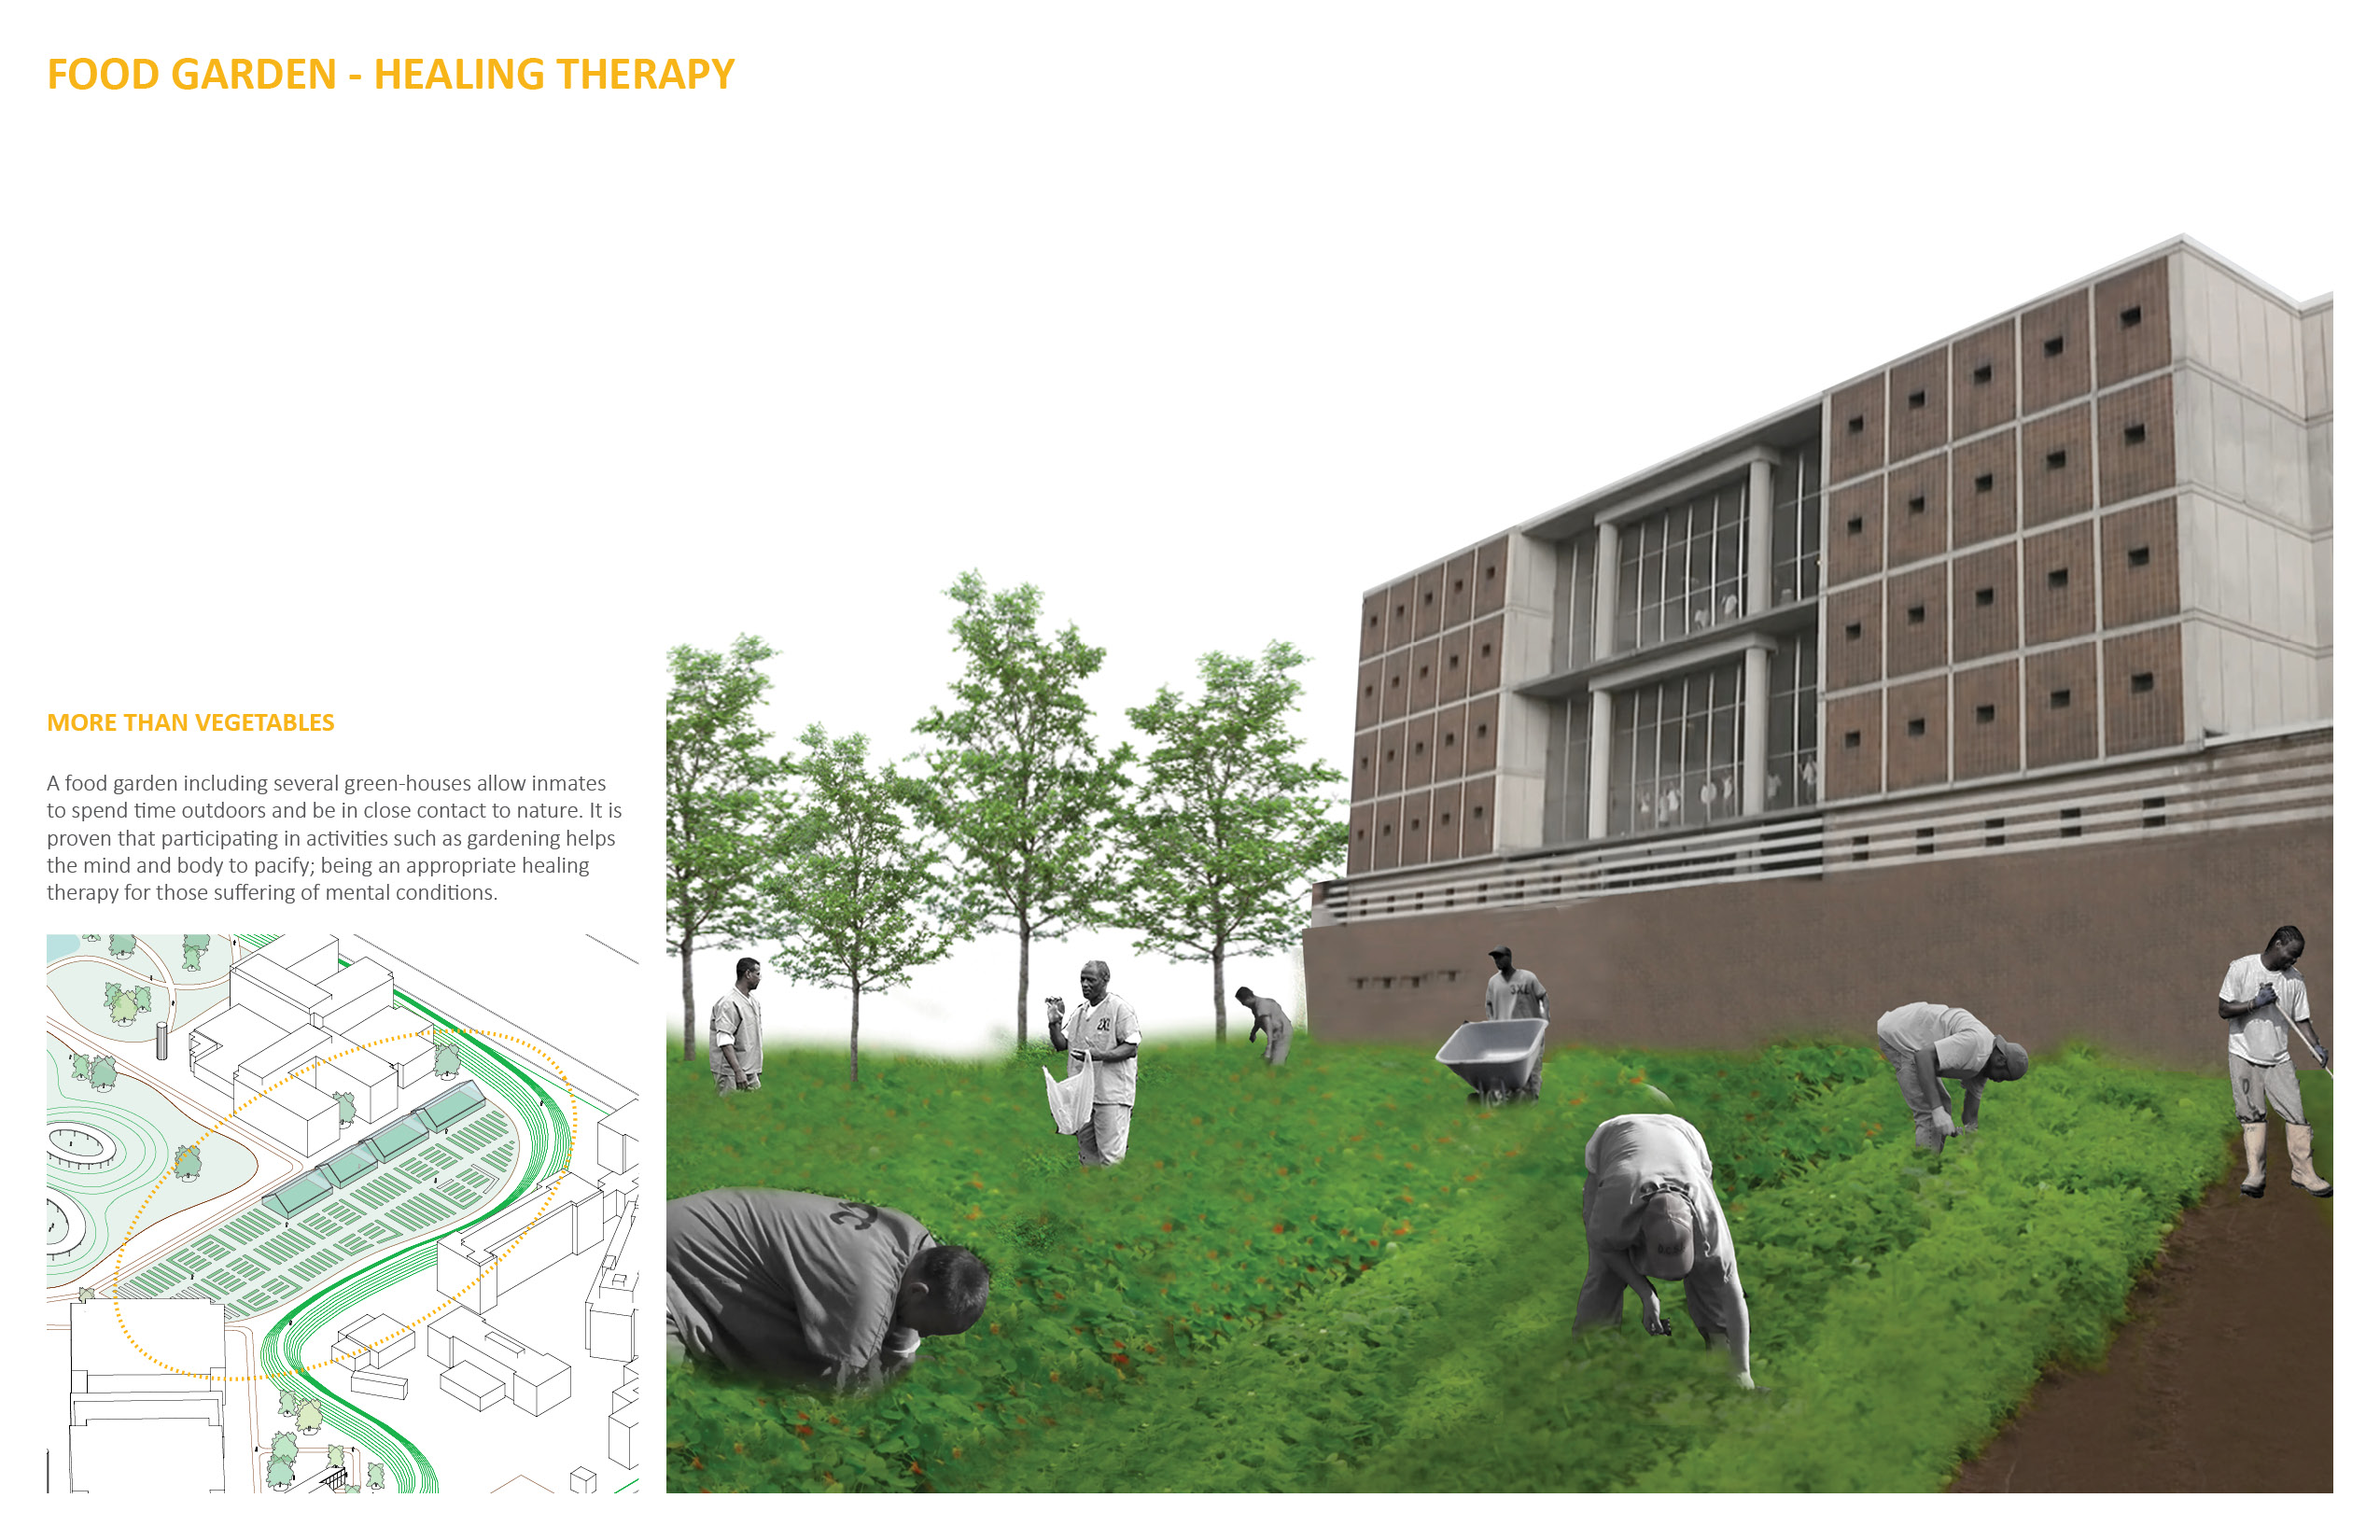 Alba Quezada - Campus Proposal - Food Garden